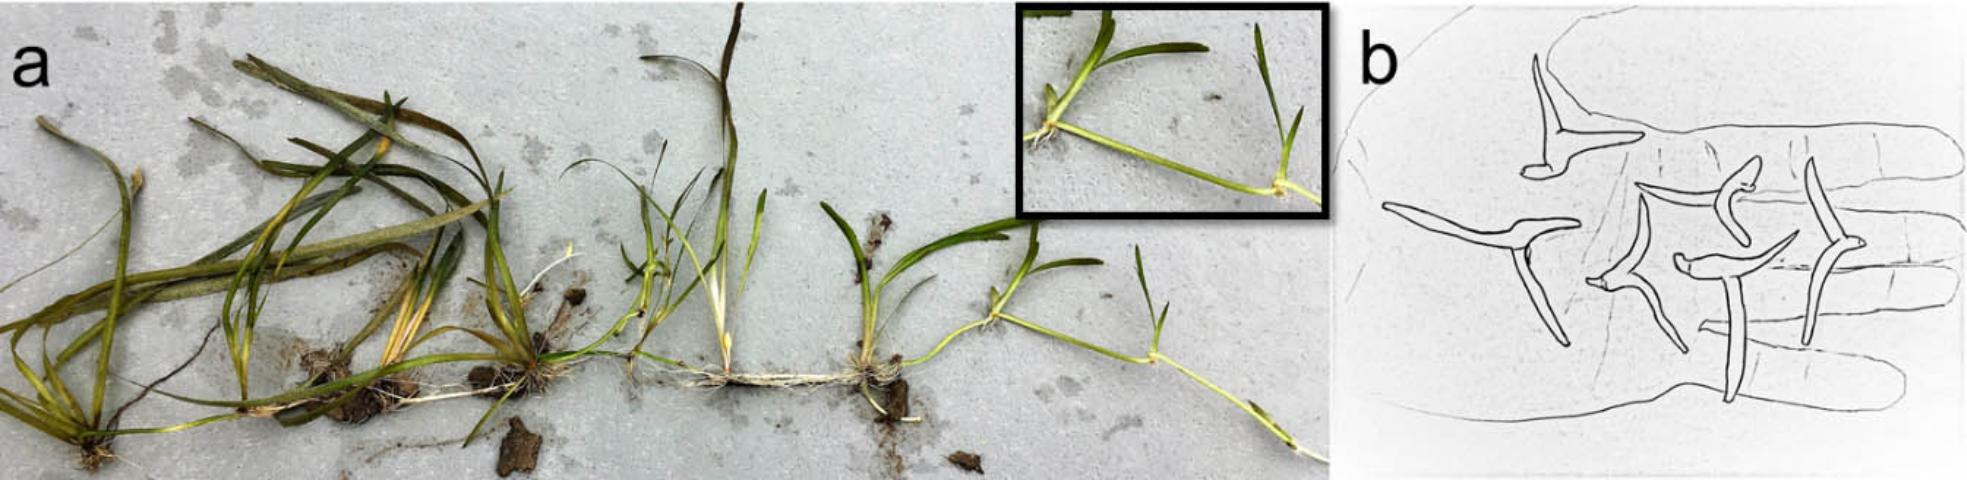 Figure 3. a) Tapegrass (Vallisneria americana) from the southern region can produce runners. b) Northern tapegrass can produce both runners and winter buds.